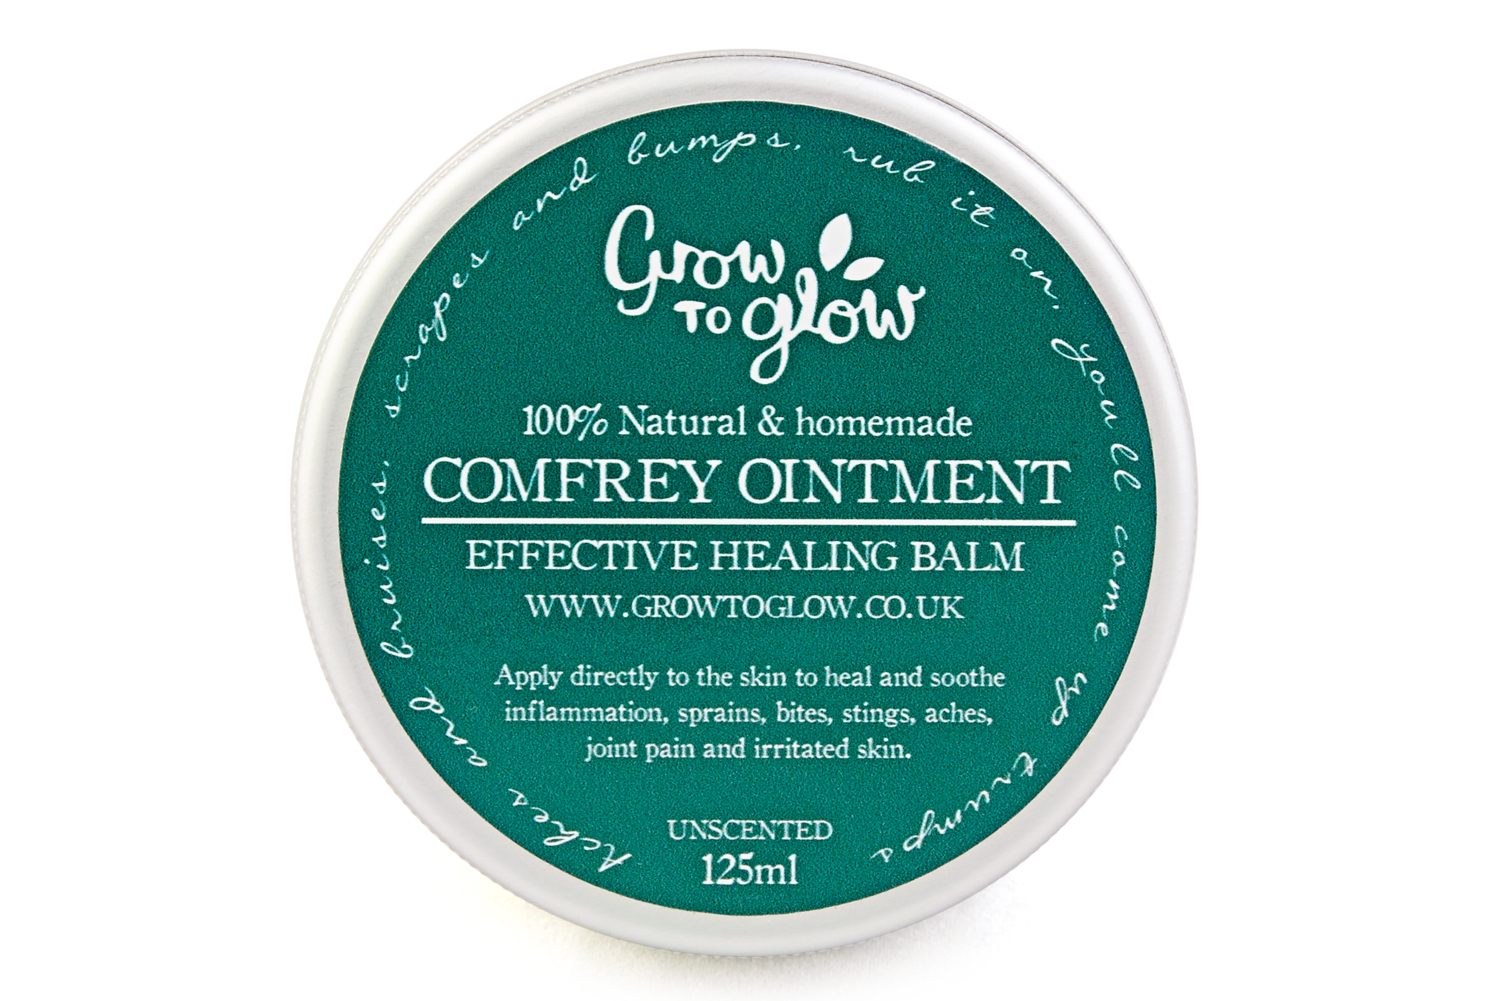 Comfrey Ointment_003